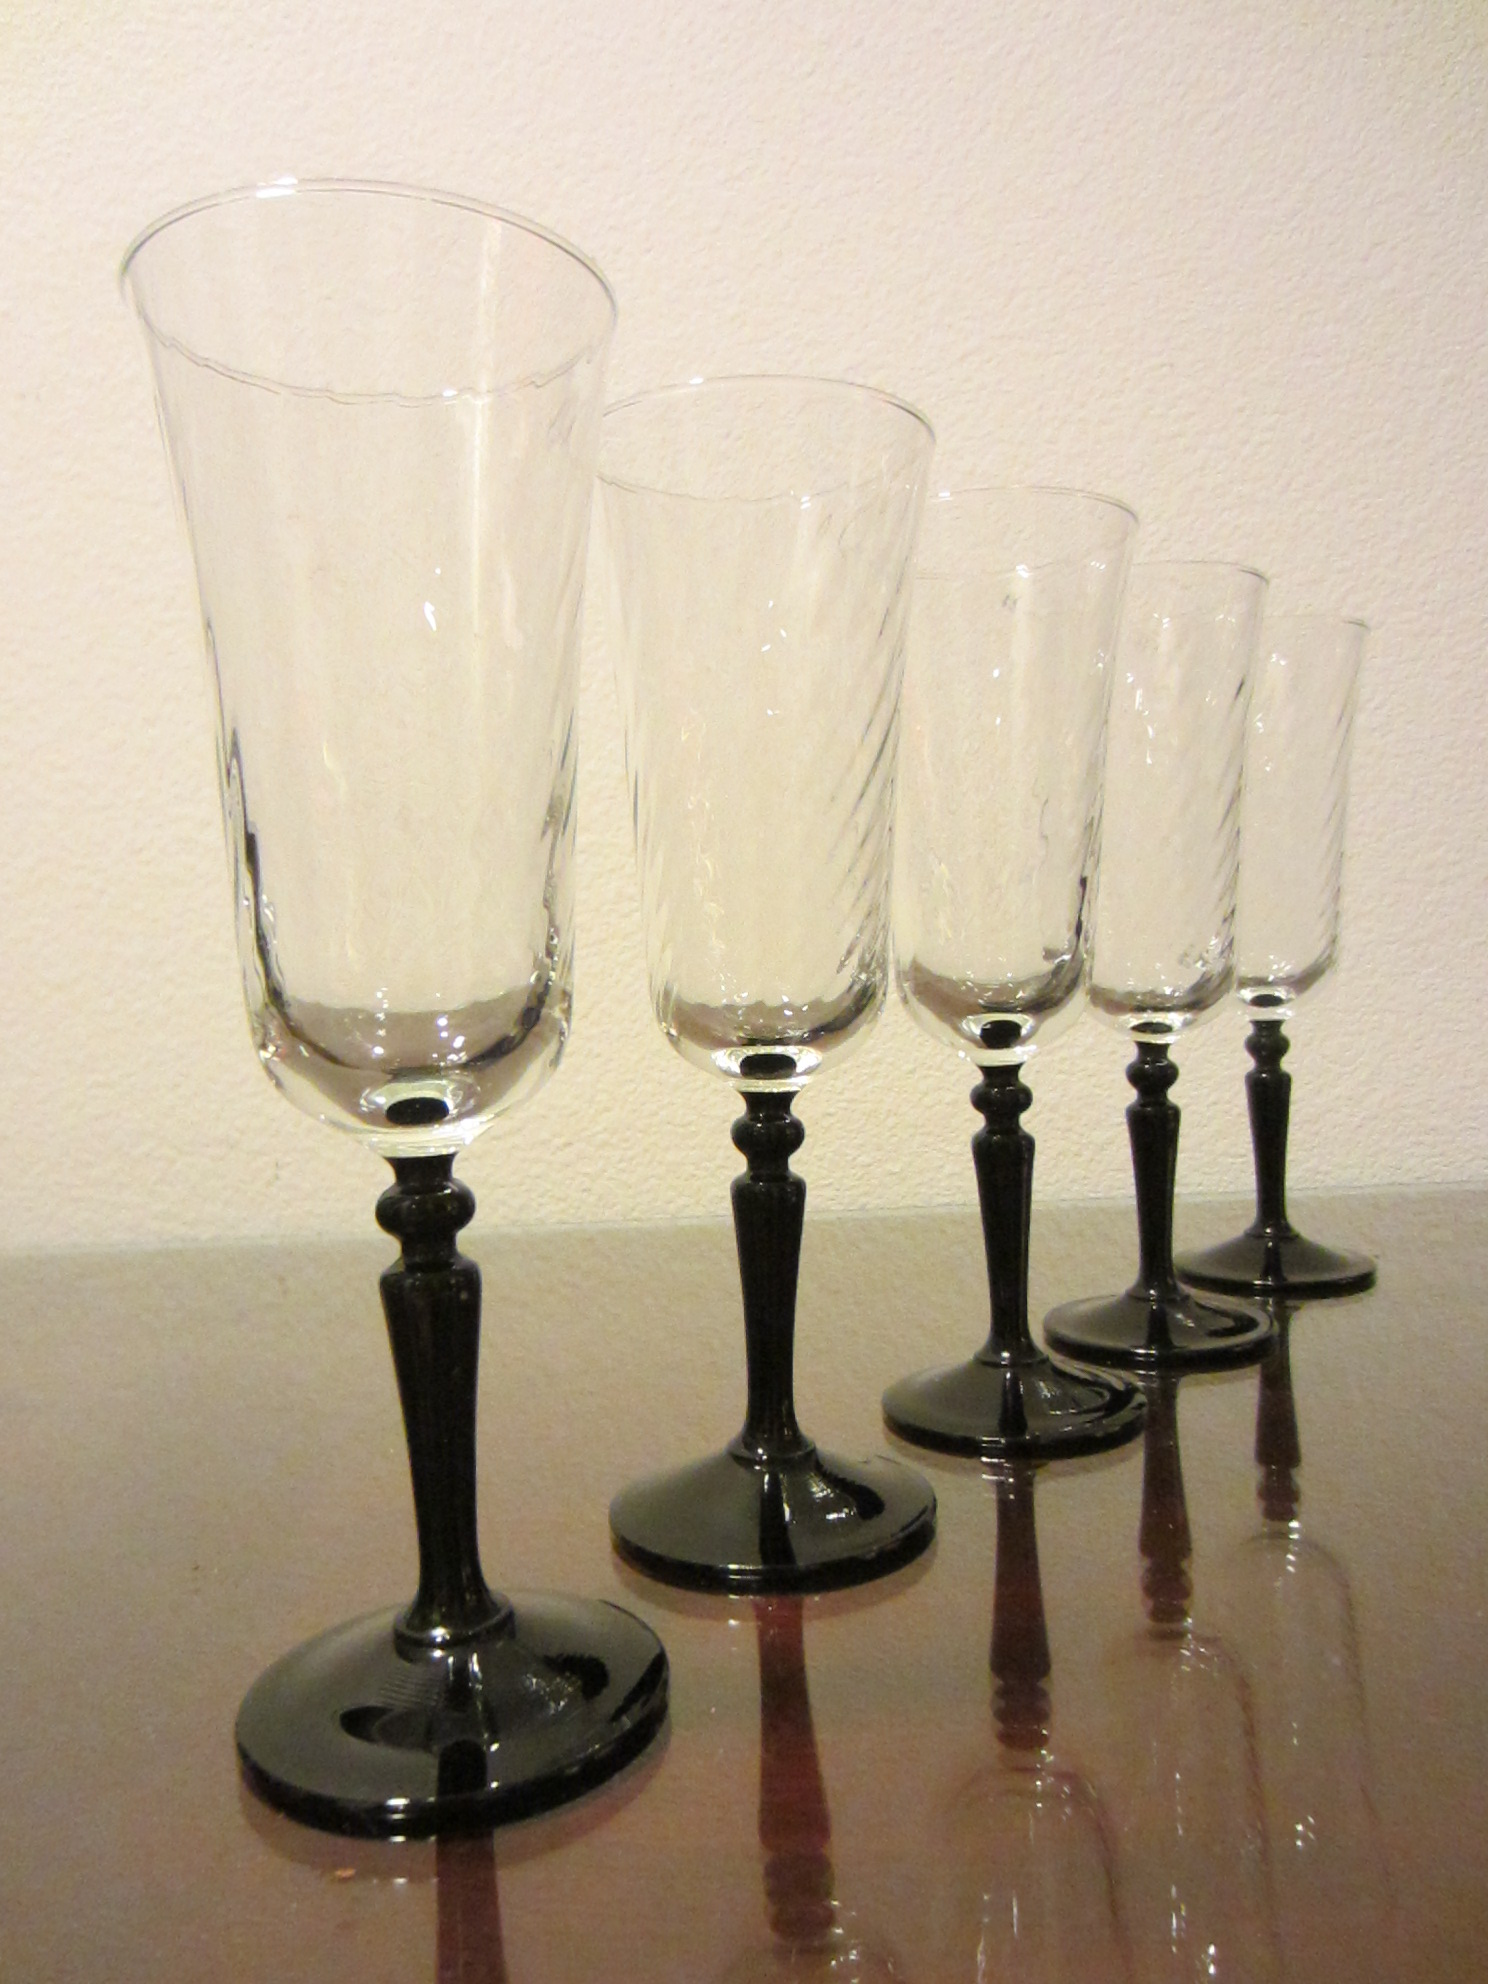 Wine Glasses With Black Stems France Ten Crystal Black Stem Textured Cordial Wine